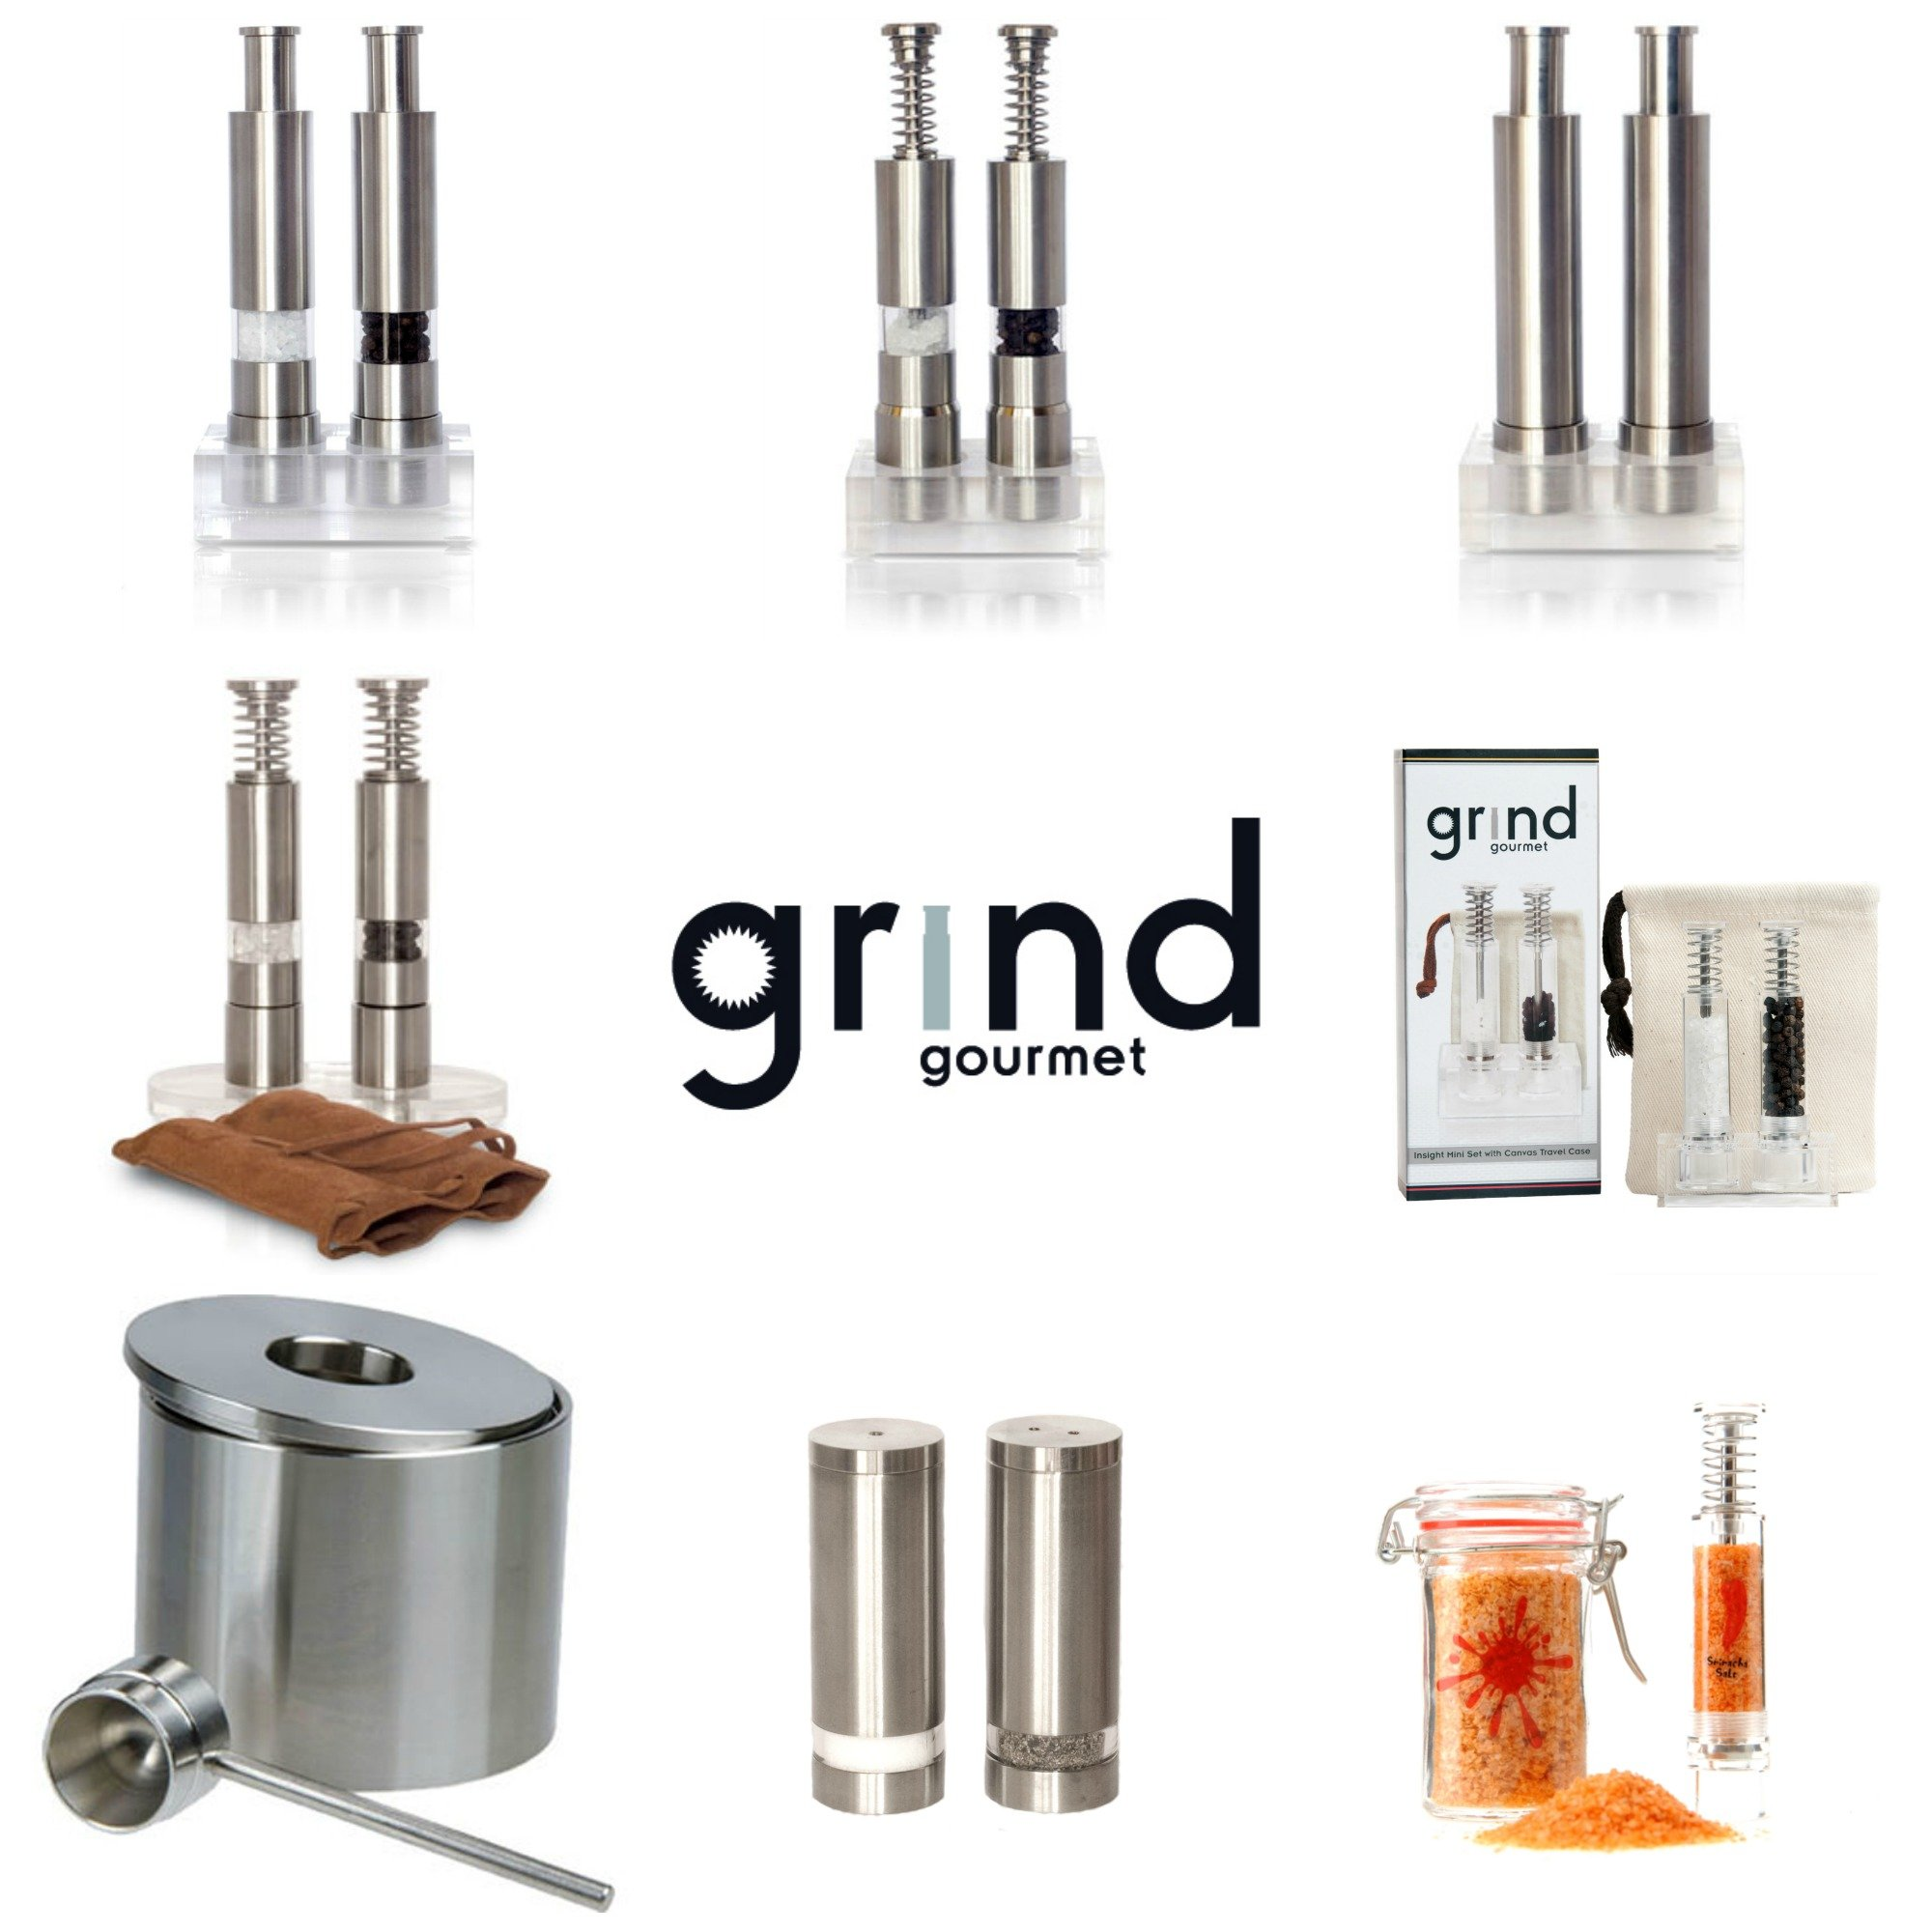 Modern Push Button Salt and Pepper Grinder Set, Grind Gourmet Pump and Grind Sea Salt and Pepper Mill Set with Stand, Refillable Grinder by Grind Gourmet